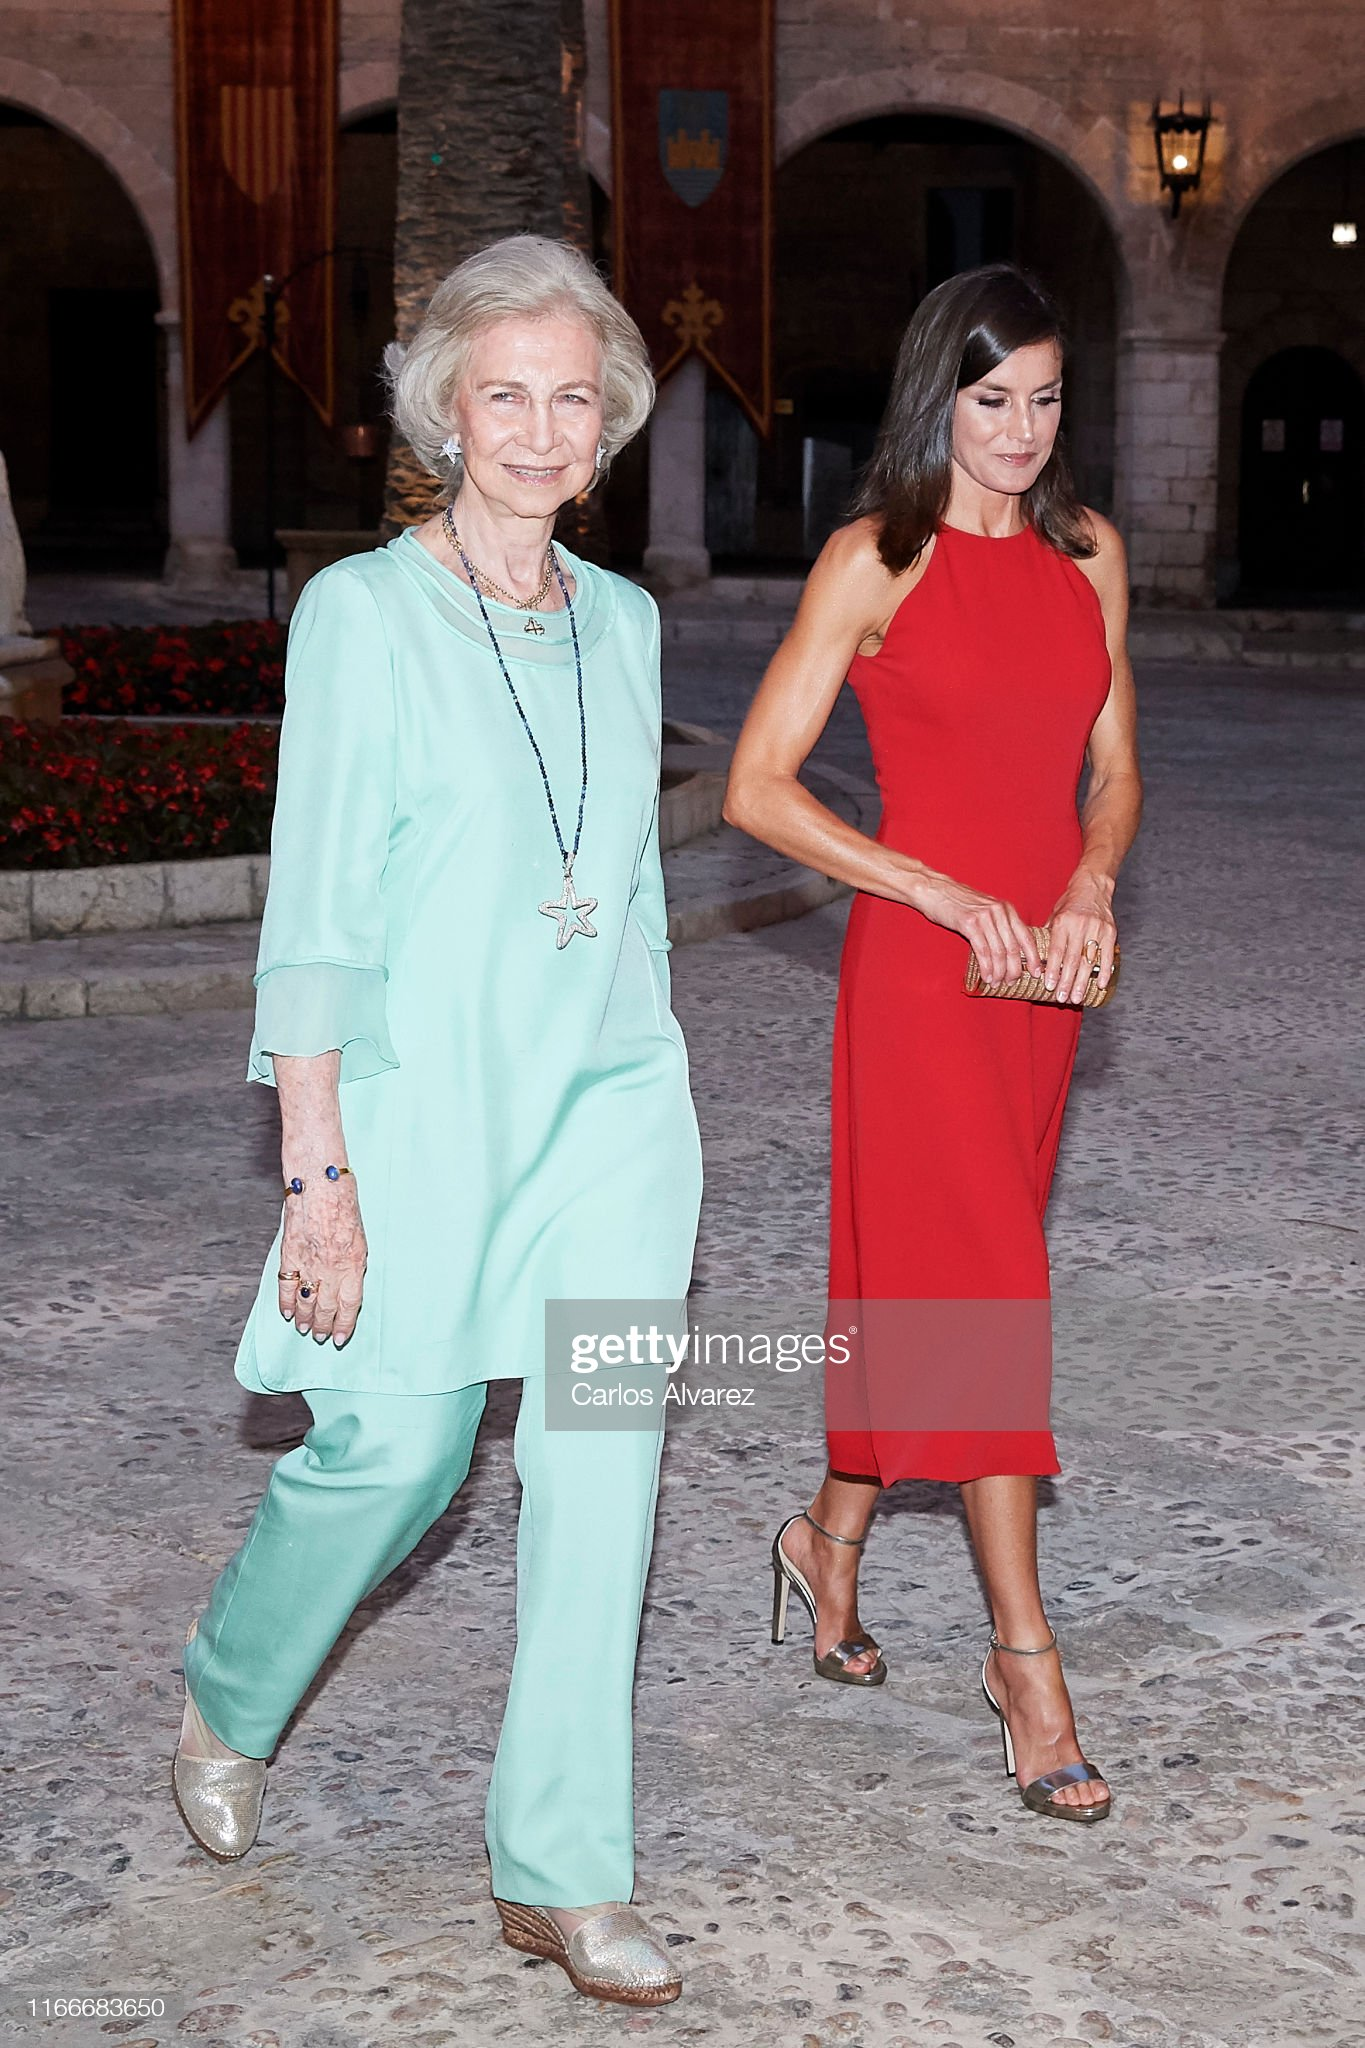 https://media.gettyimages.com/photos/queen-letizia-of-spain-and-queen-sofia-host-a-dinner-for-authorities-picture-id1166683650?s=2048x2048